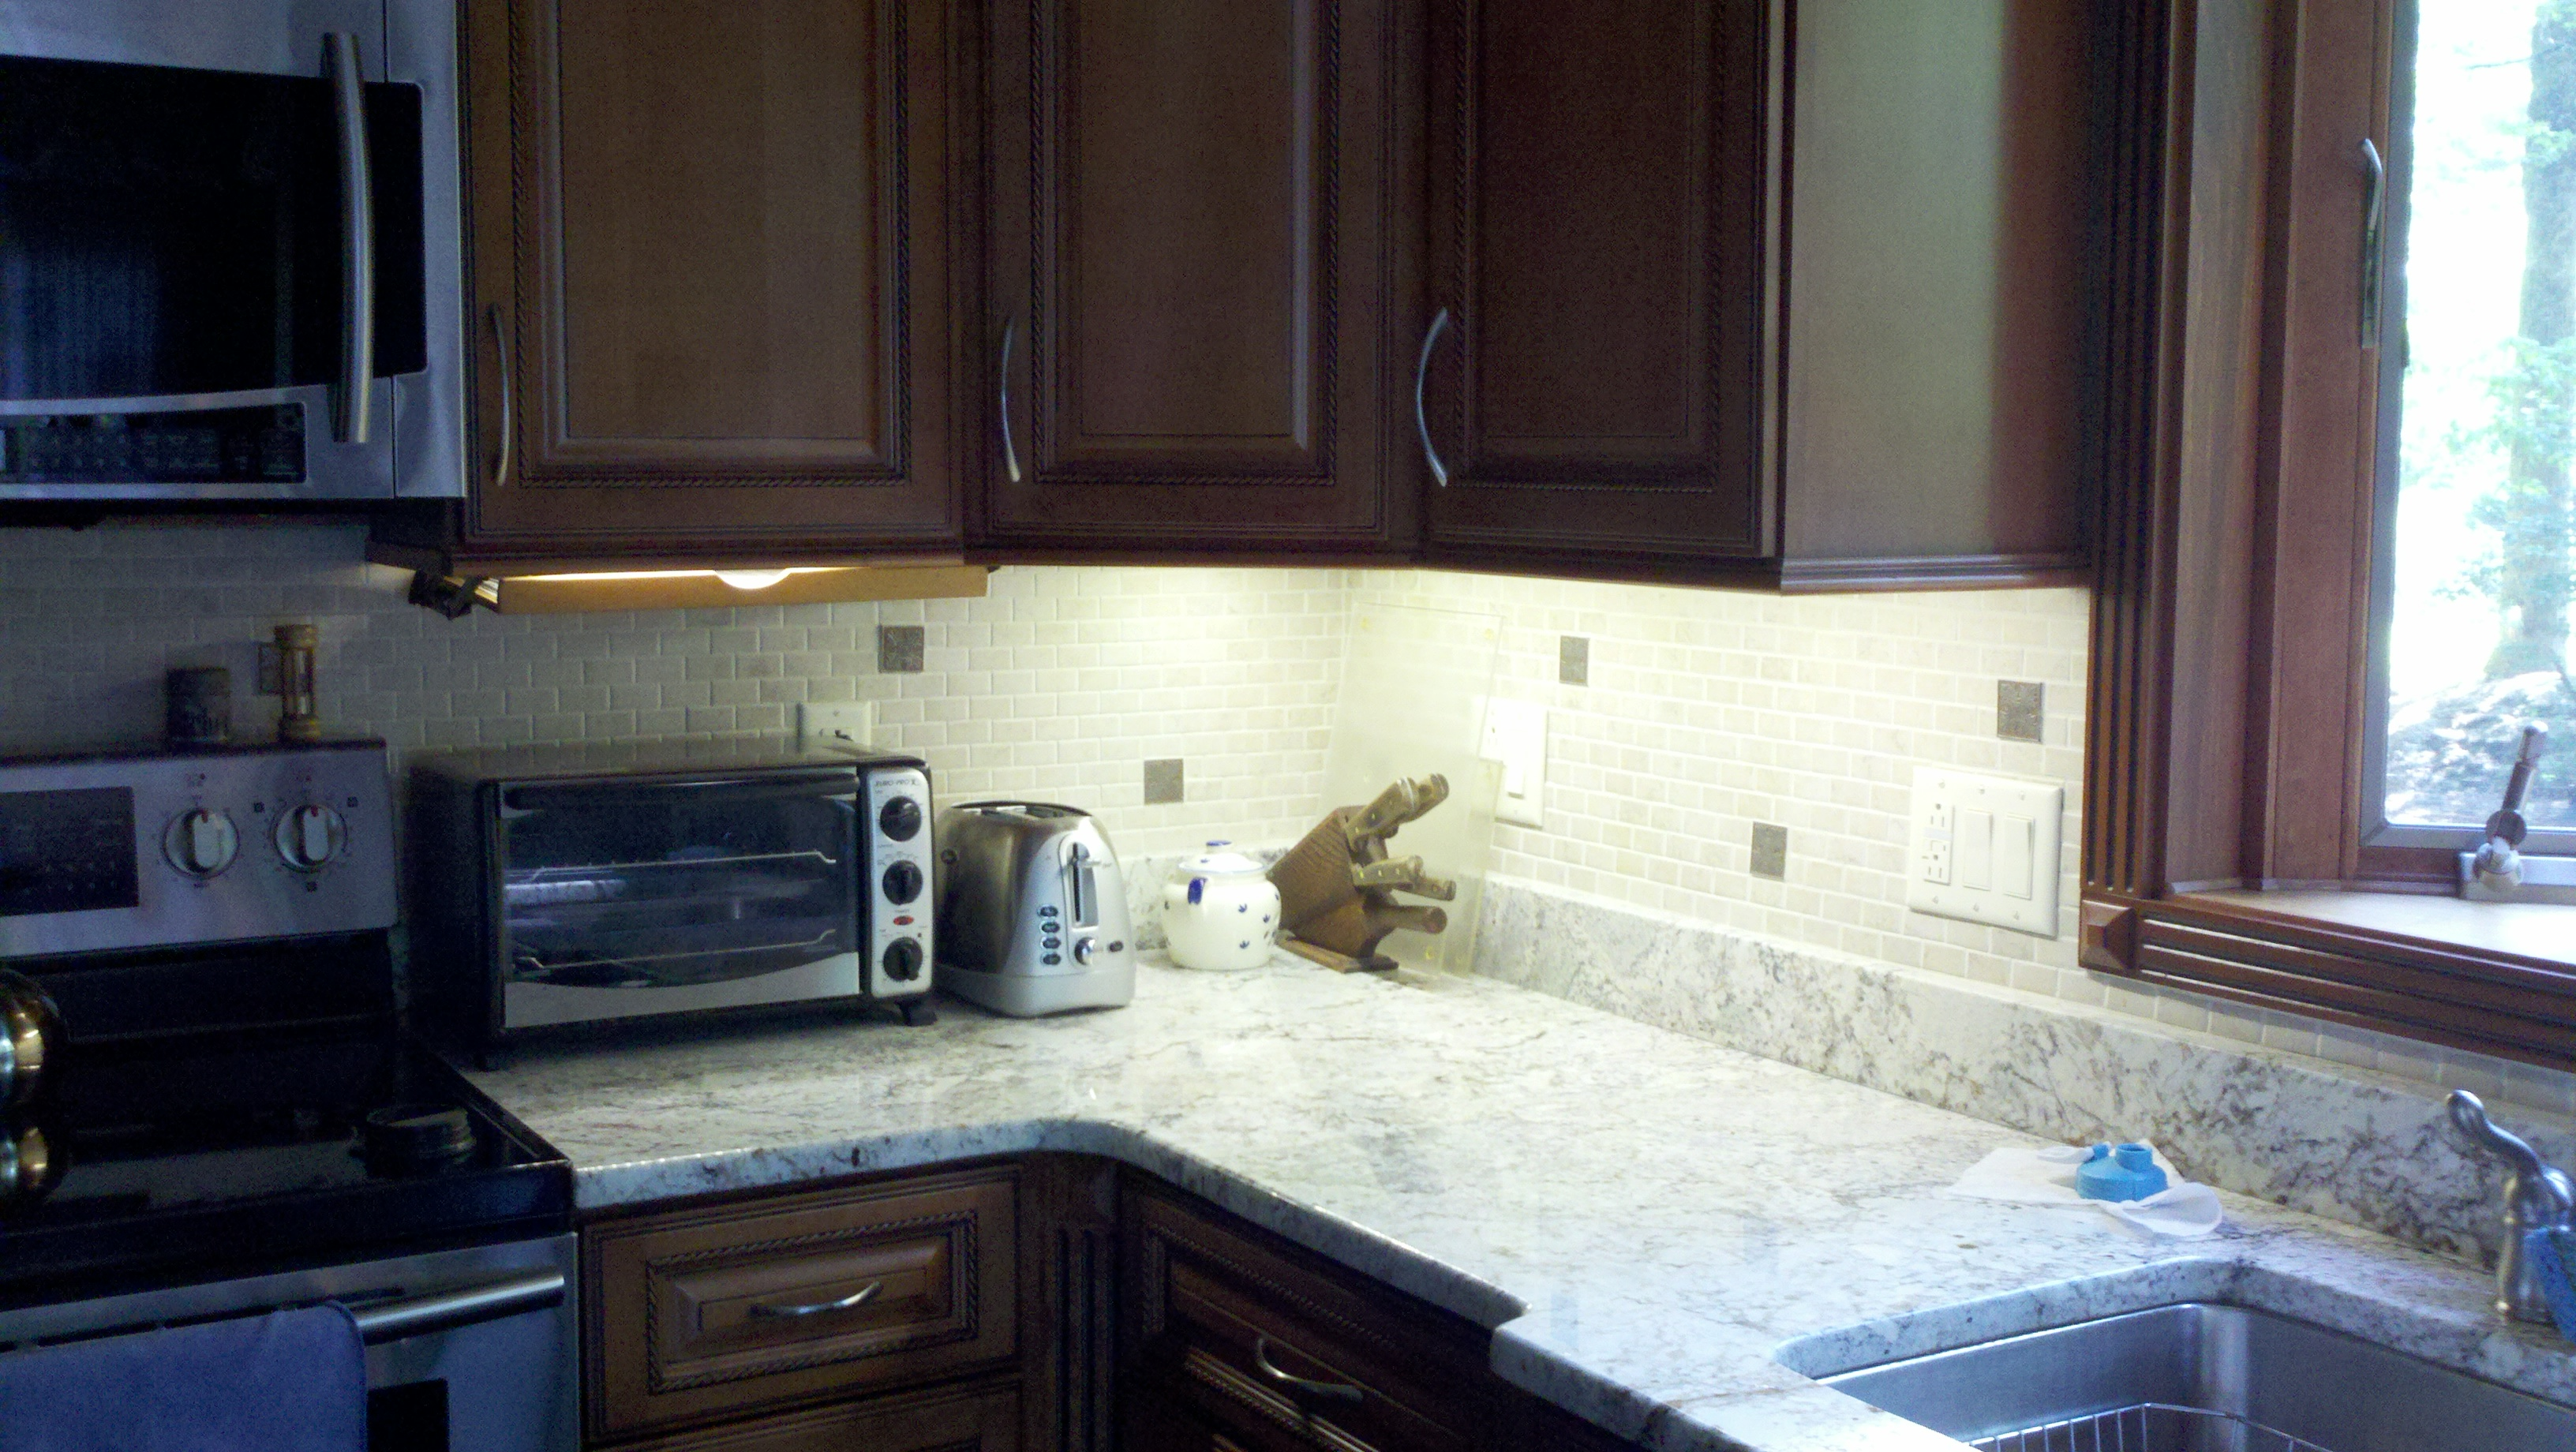 Beau Under Cabinet Kitchen LED LIghts Look Great! Learn Howto Make Them.